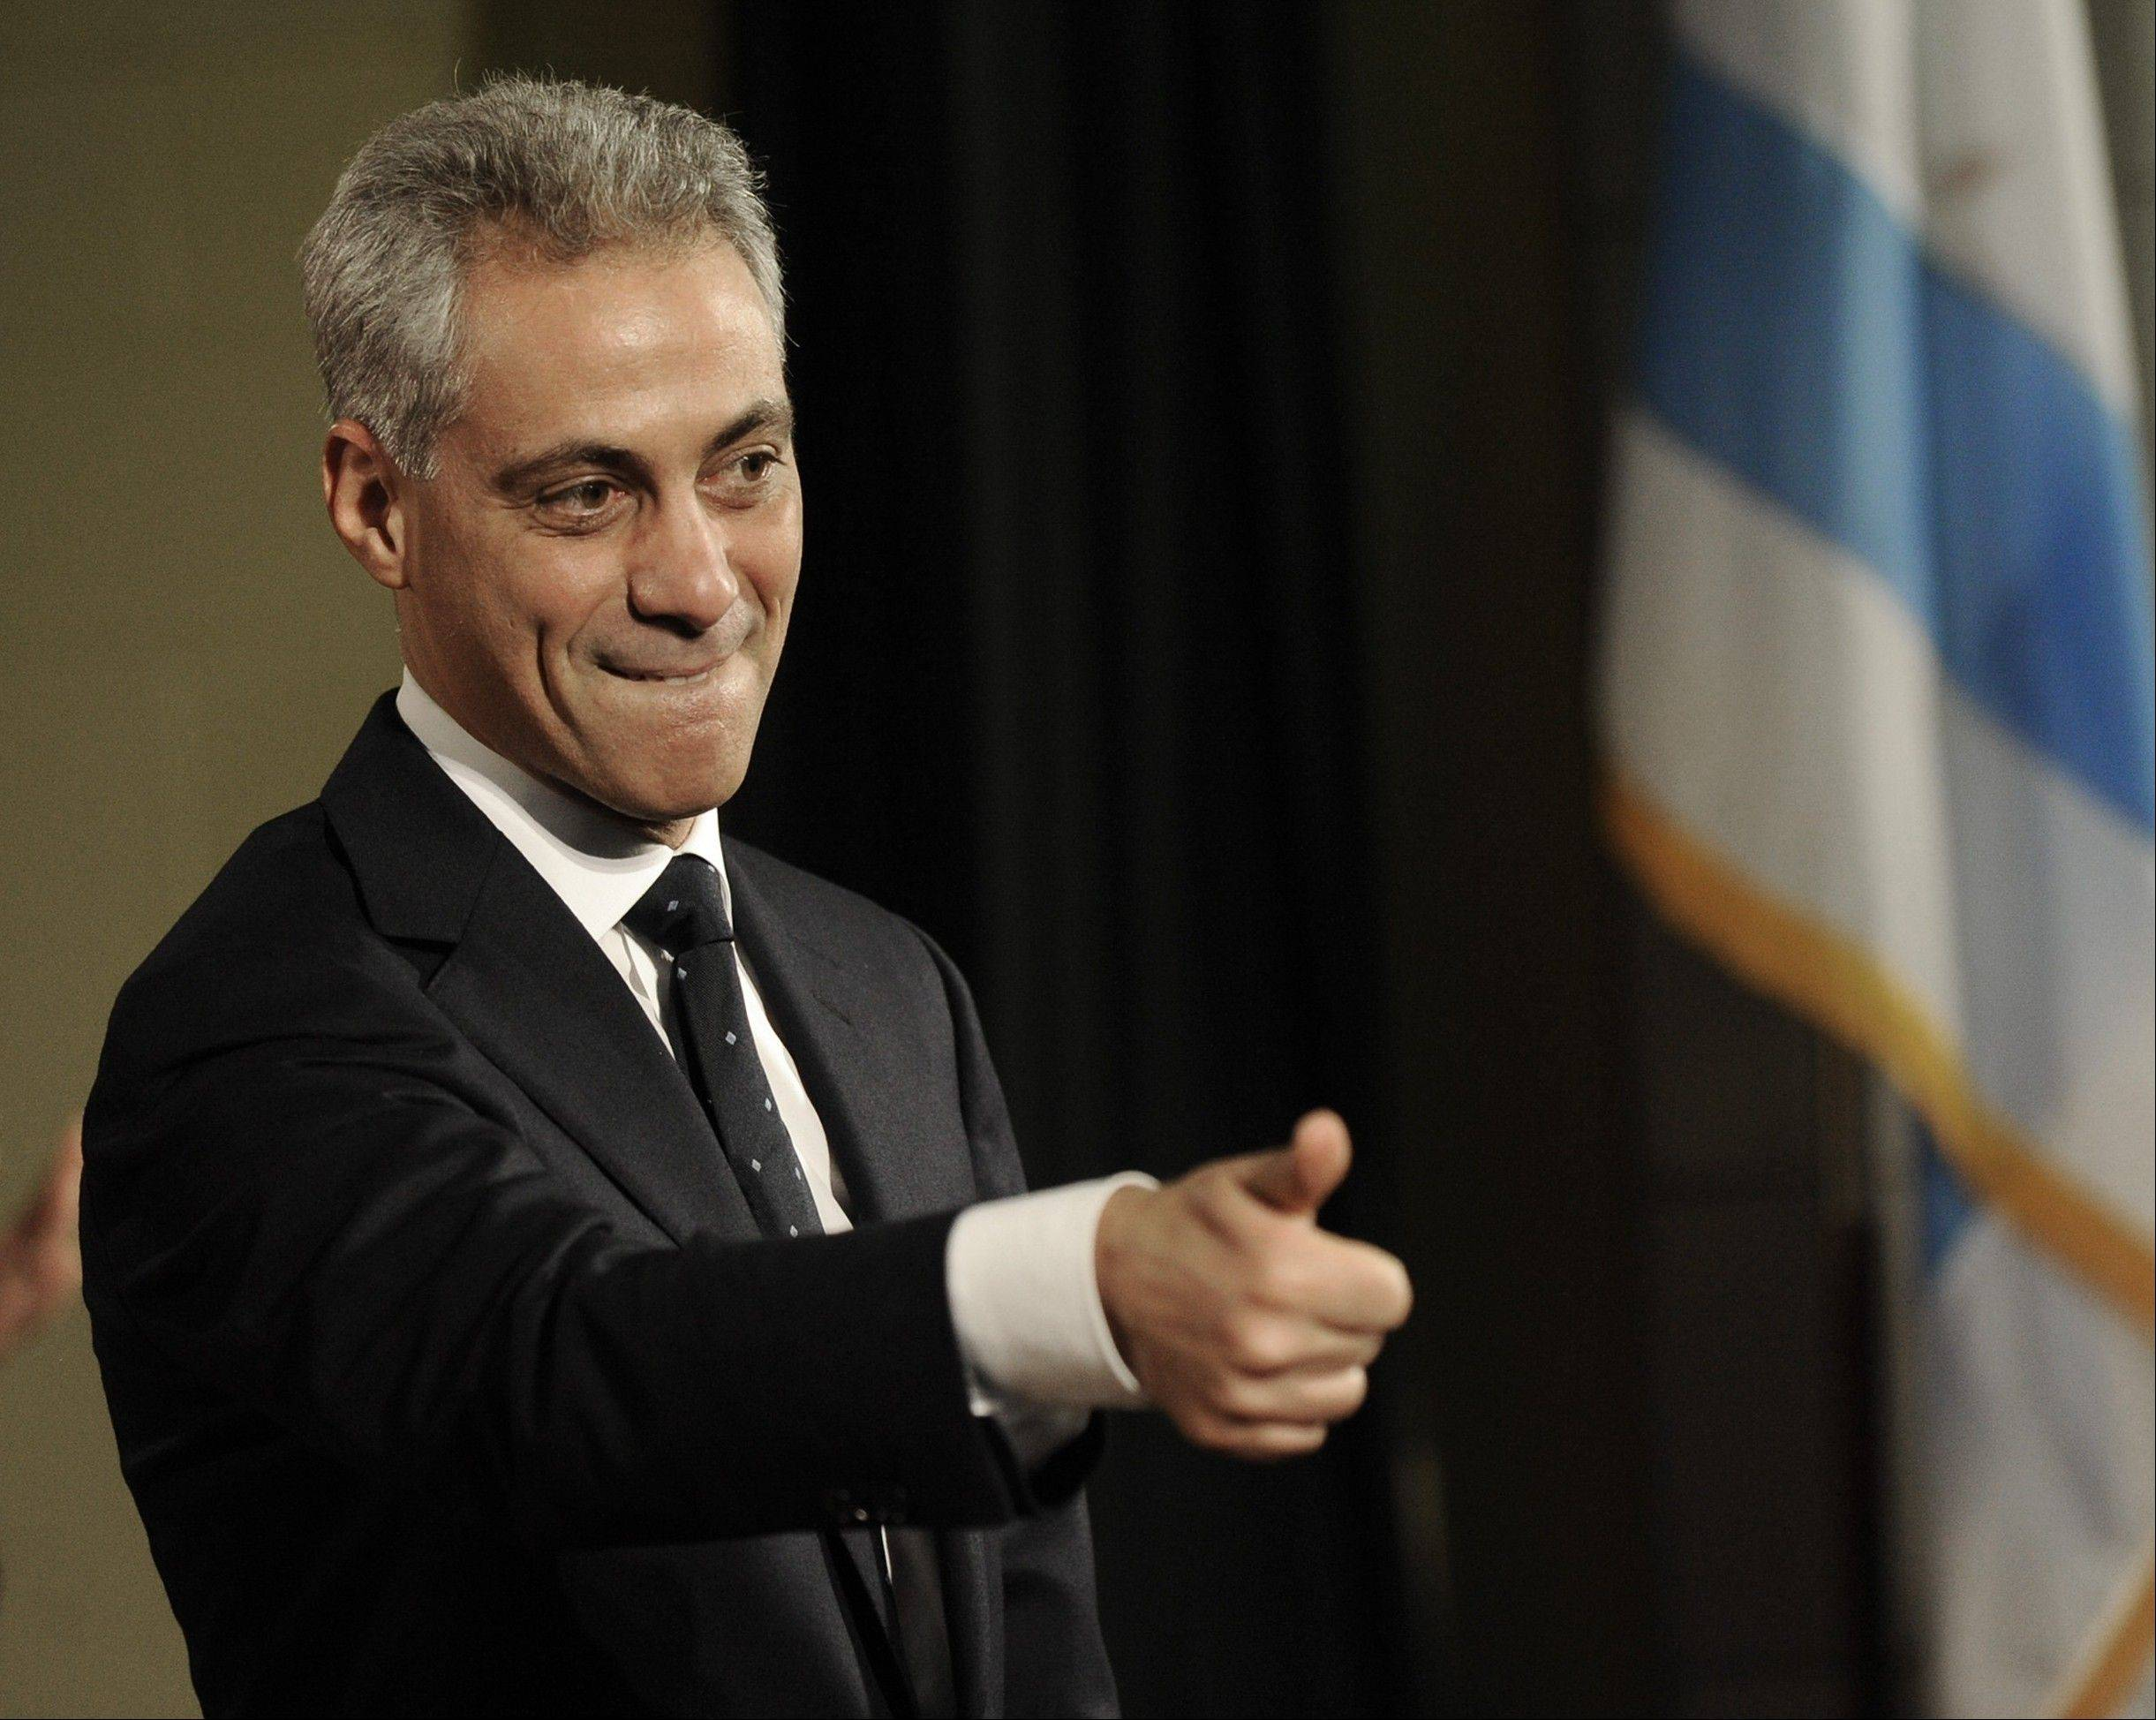 Mayor Rahm Emanuel says technology is important for creating jobs and improving residents' quality of life.